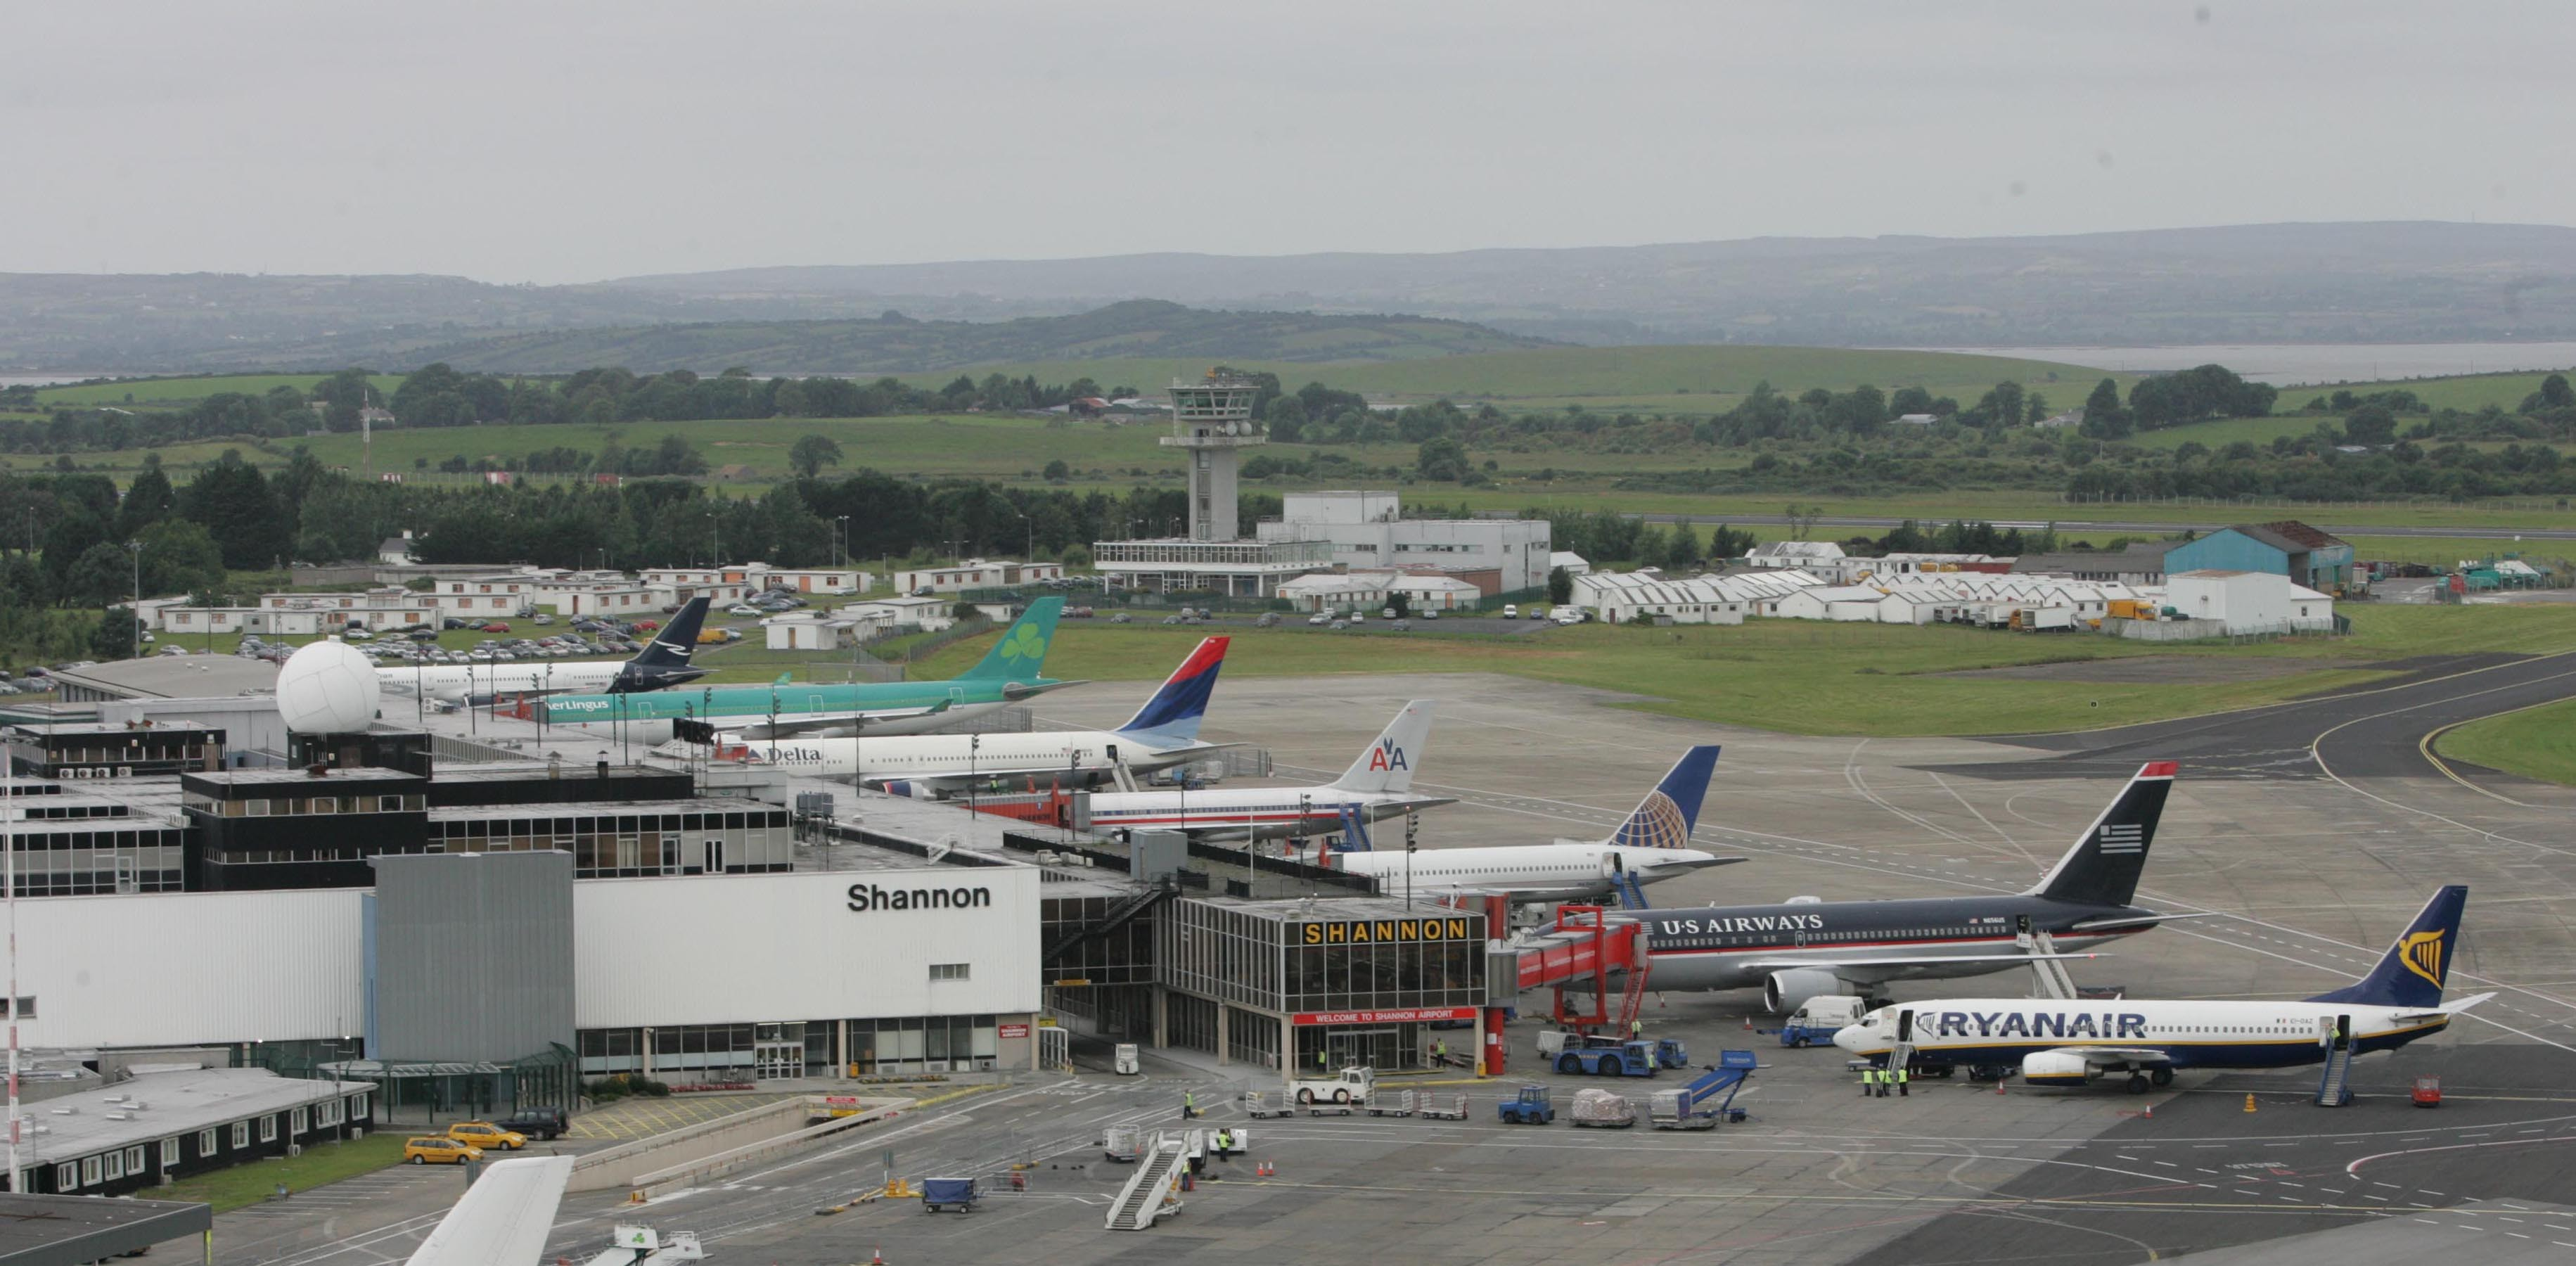 Shannon airport ireland images, stock photos vectors